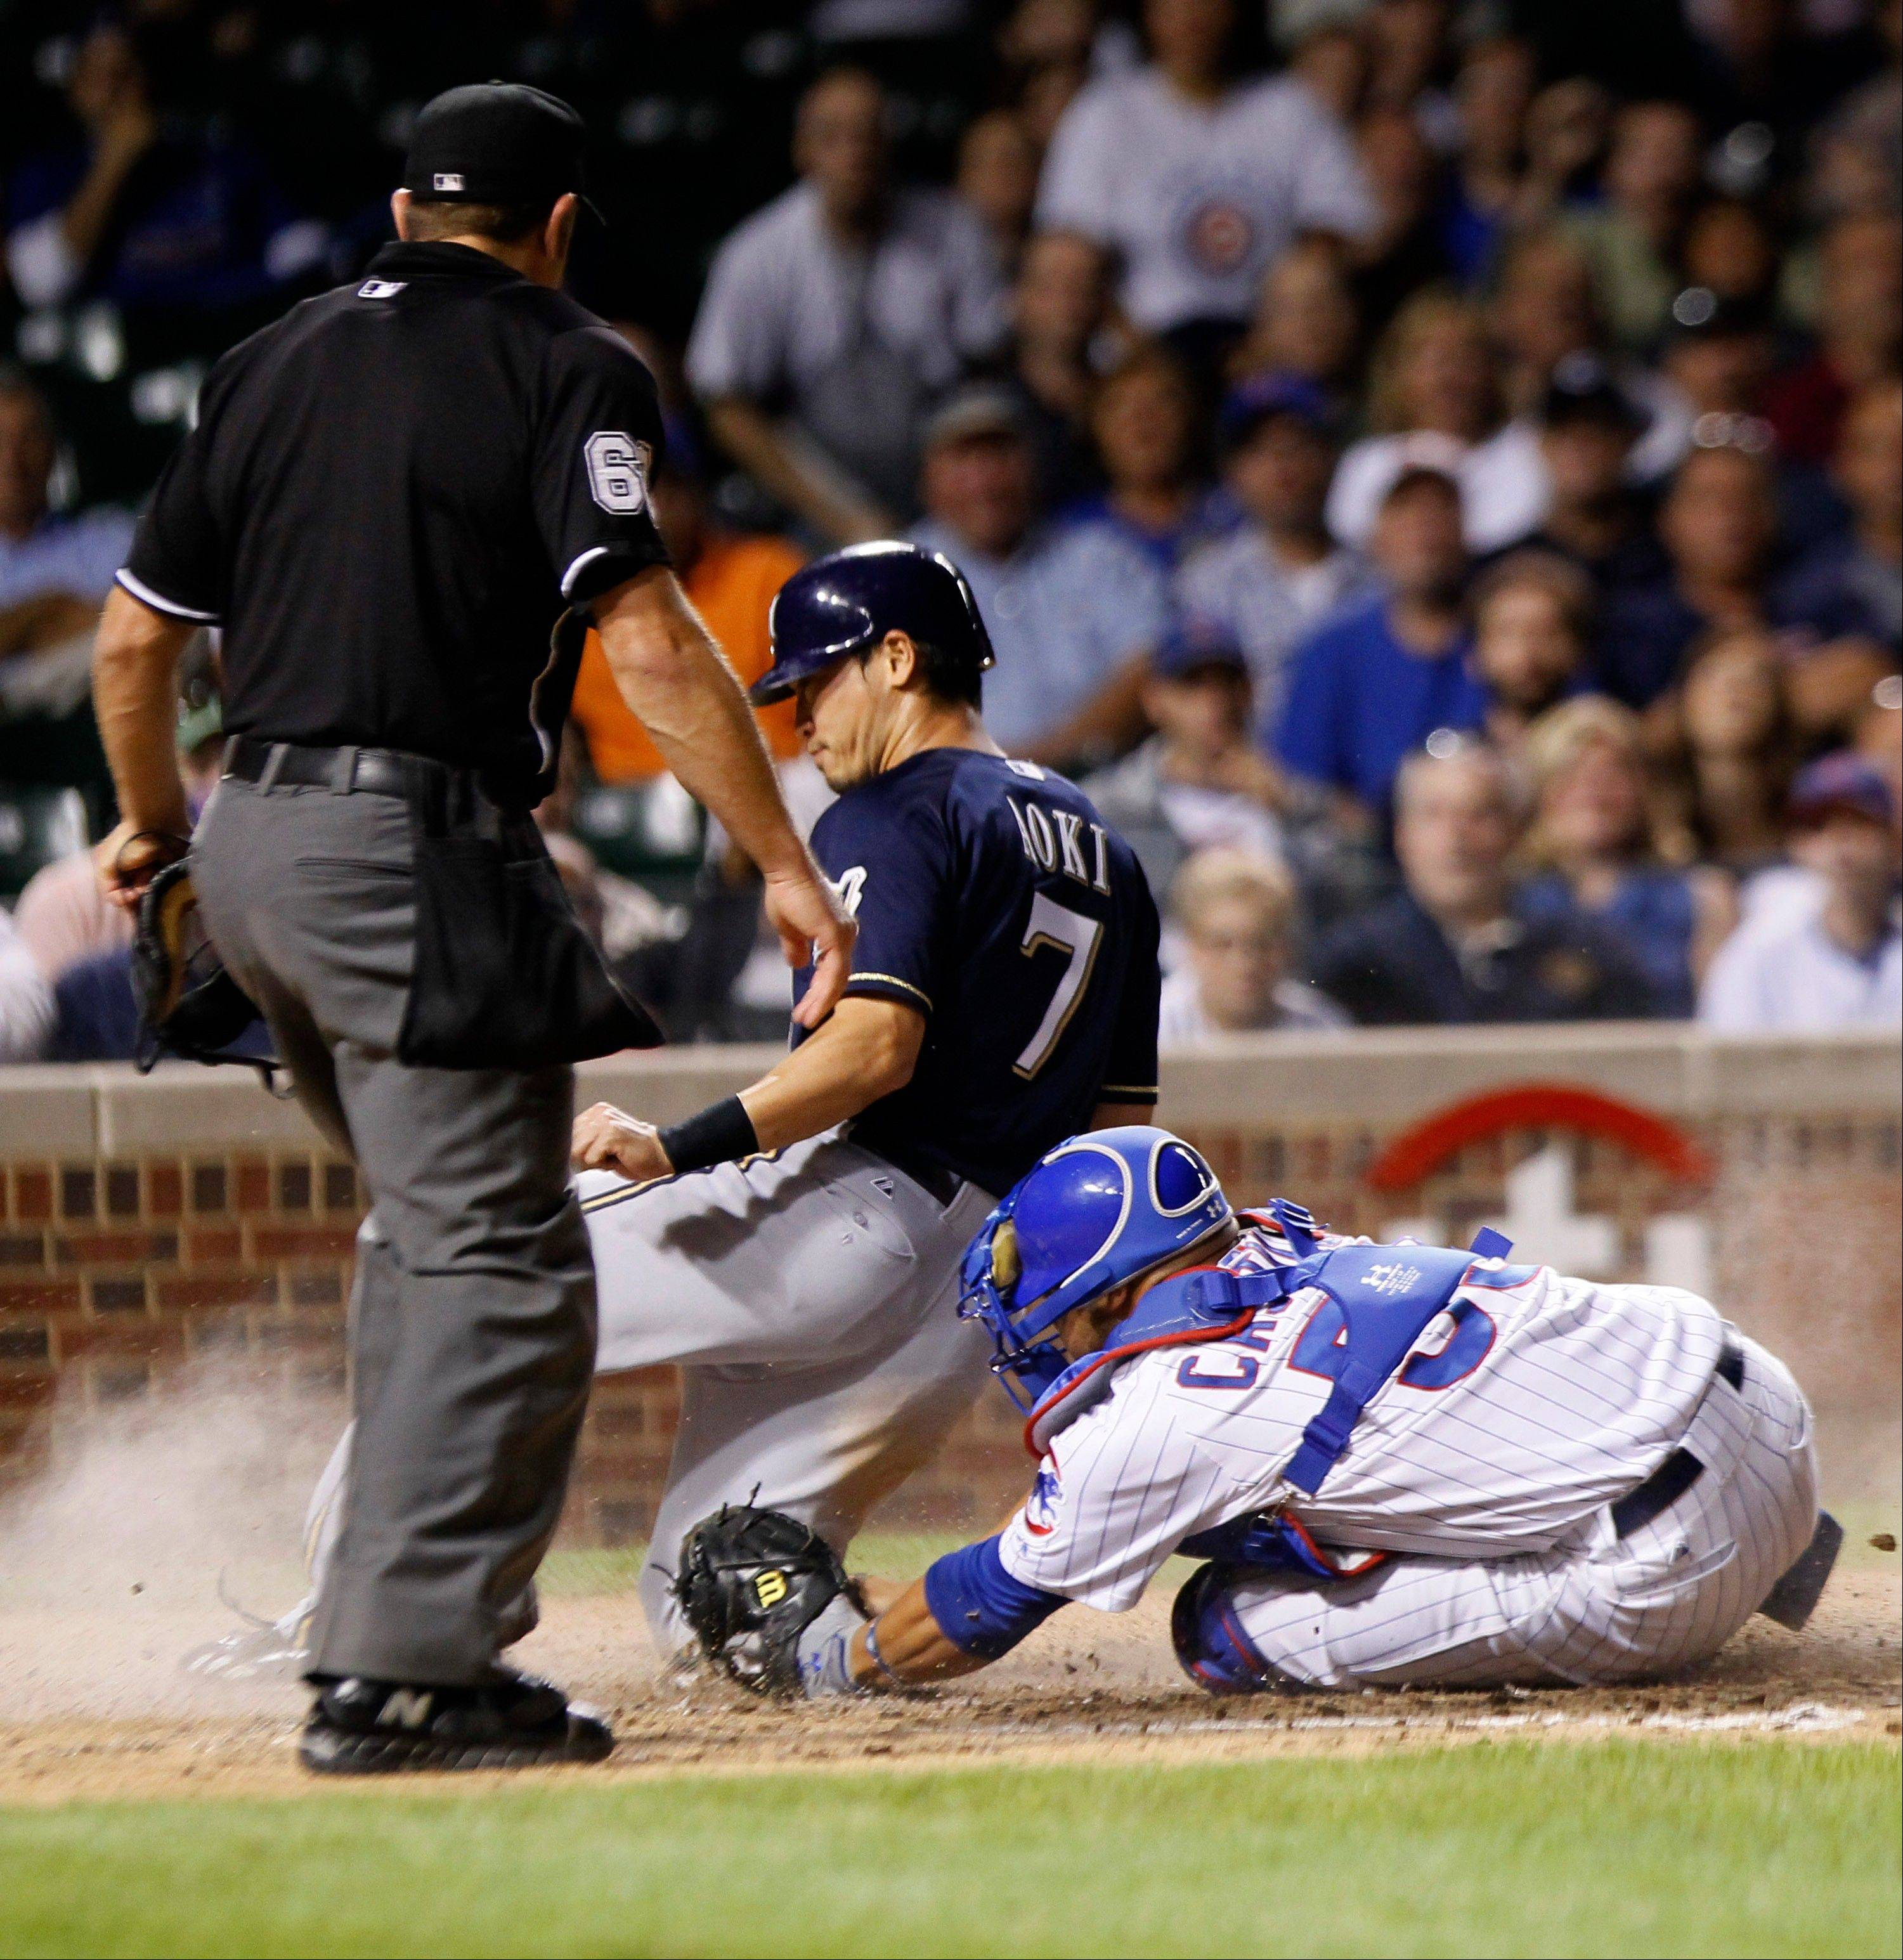 Milwaukee's Norichika Aoki scores past Cubs catcher Steve Clevenger after Rickie Weeks was caught in a rundown trying to steal second during the eighth inning Tuesday at Wrigley Field.